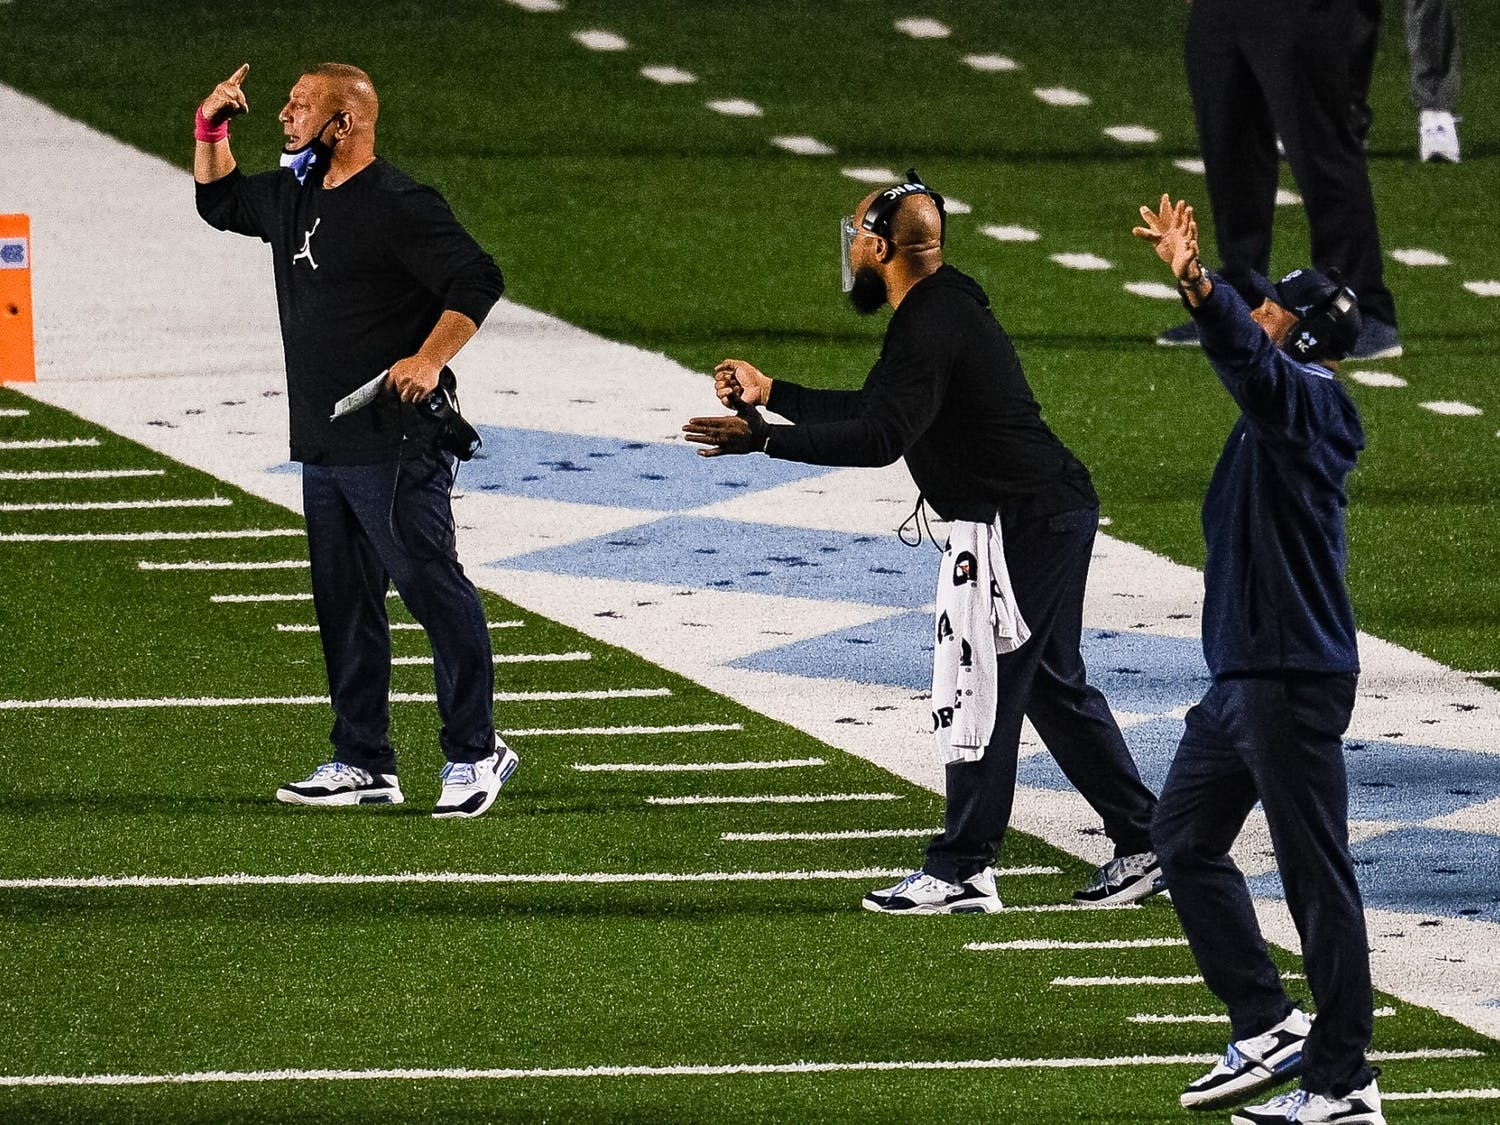 UNC offensive coordinator and quarterbacks coach Phil Longo yells instructions alongside other coaches during a game against Notre Dame in Kenan Memorial Stadium on Friday, Nov. 27, 2020. Notre Dame beat UNC 32-17.